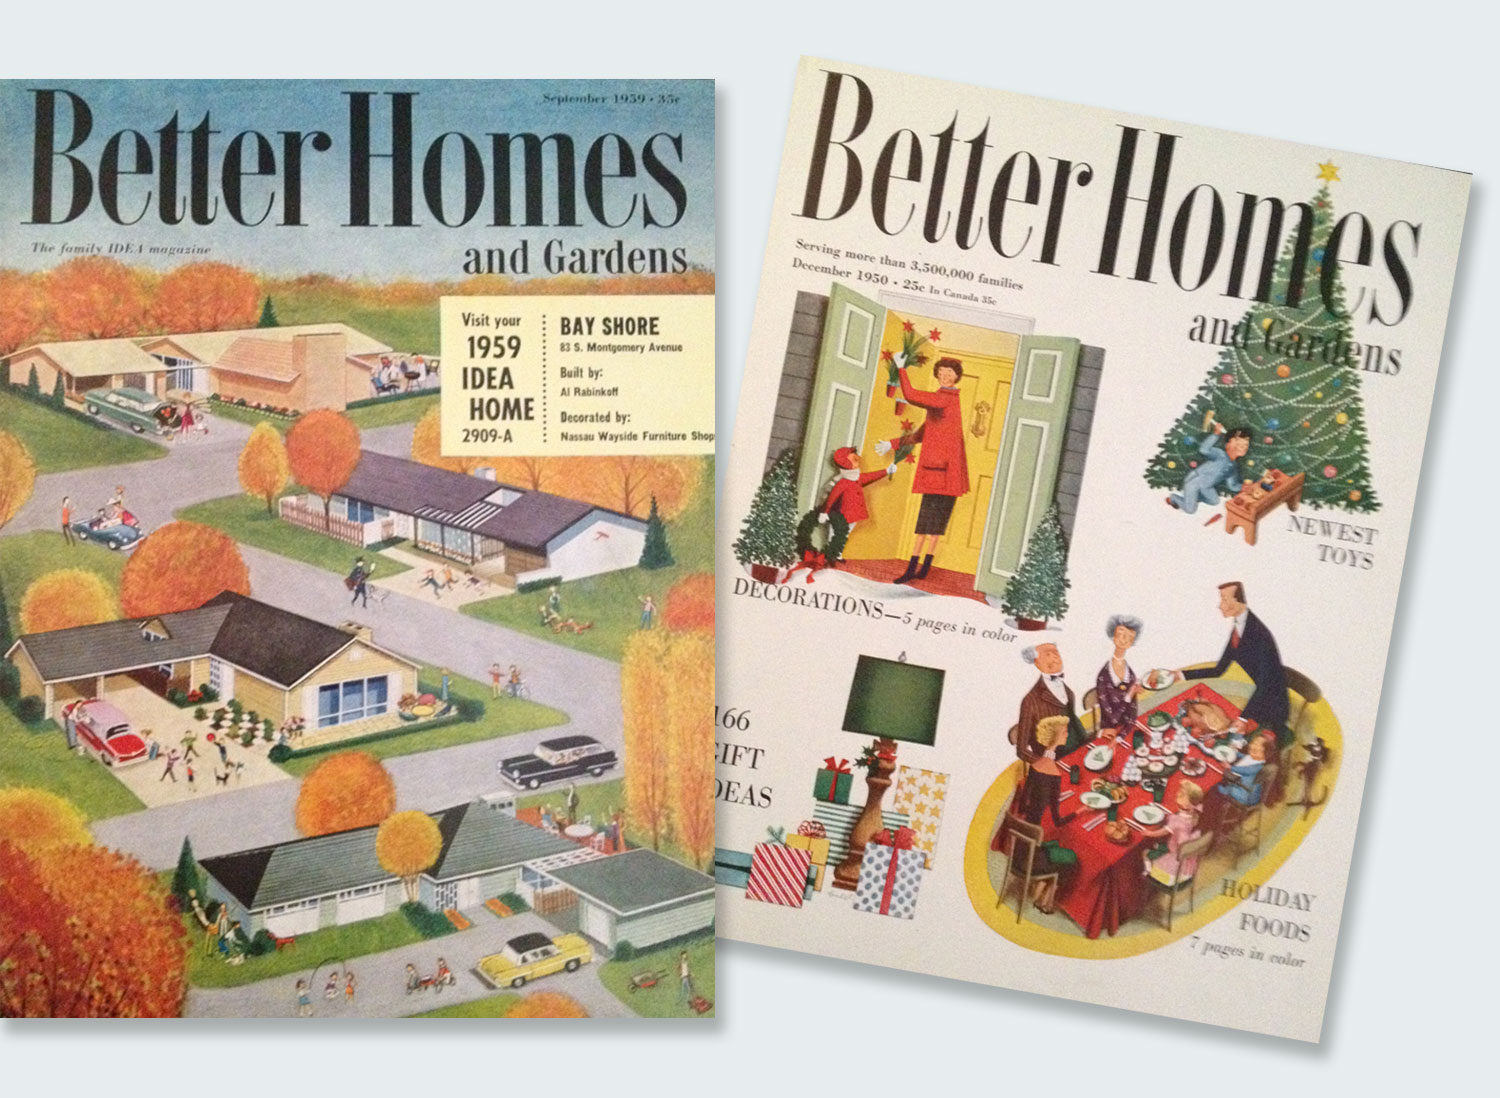 Better Homes and Gardens, 1959 and 1950